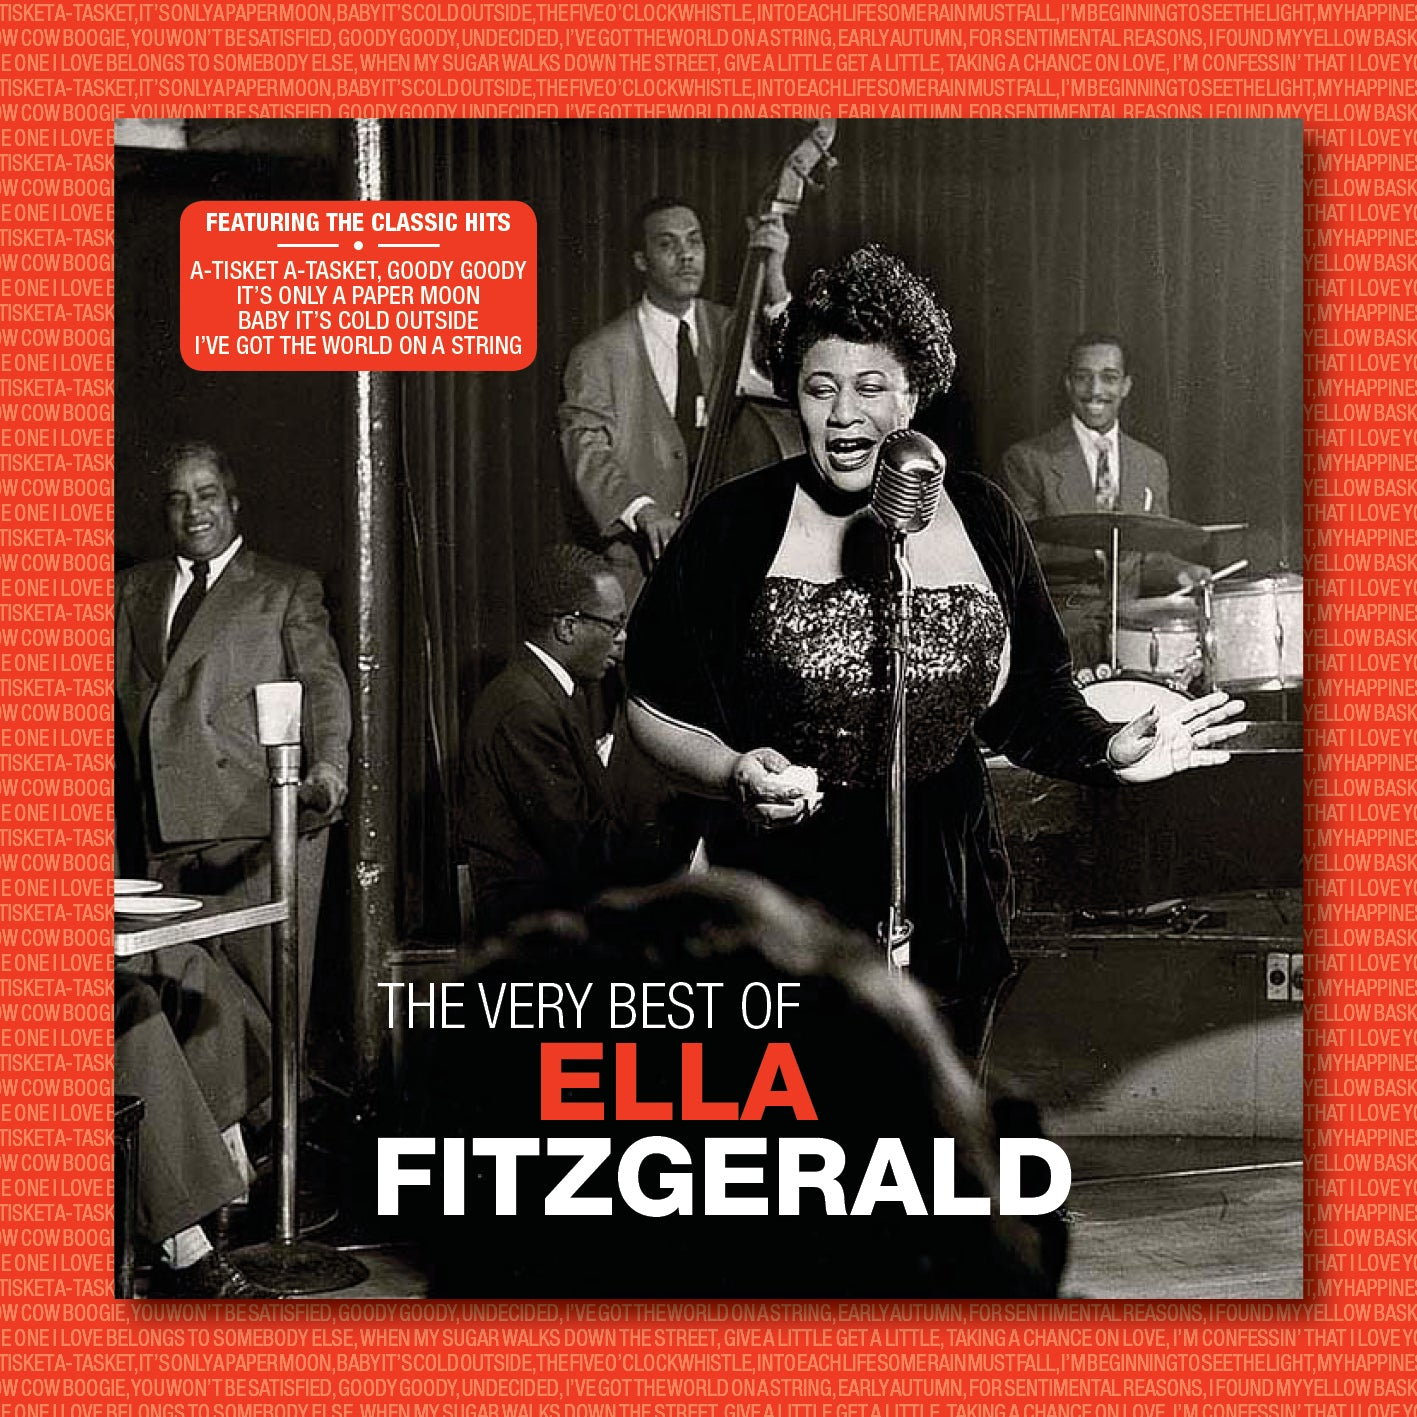 FANFARE167 - ELLA FITZGERALD - THE VERY